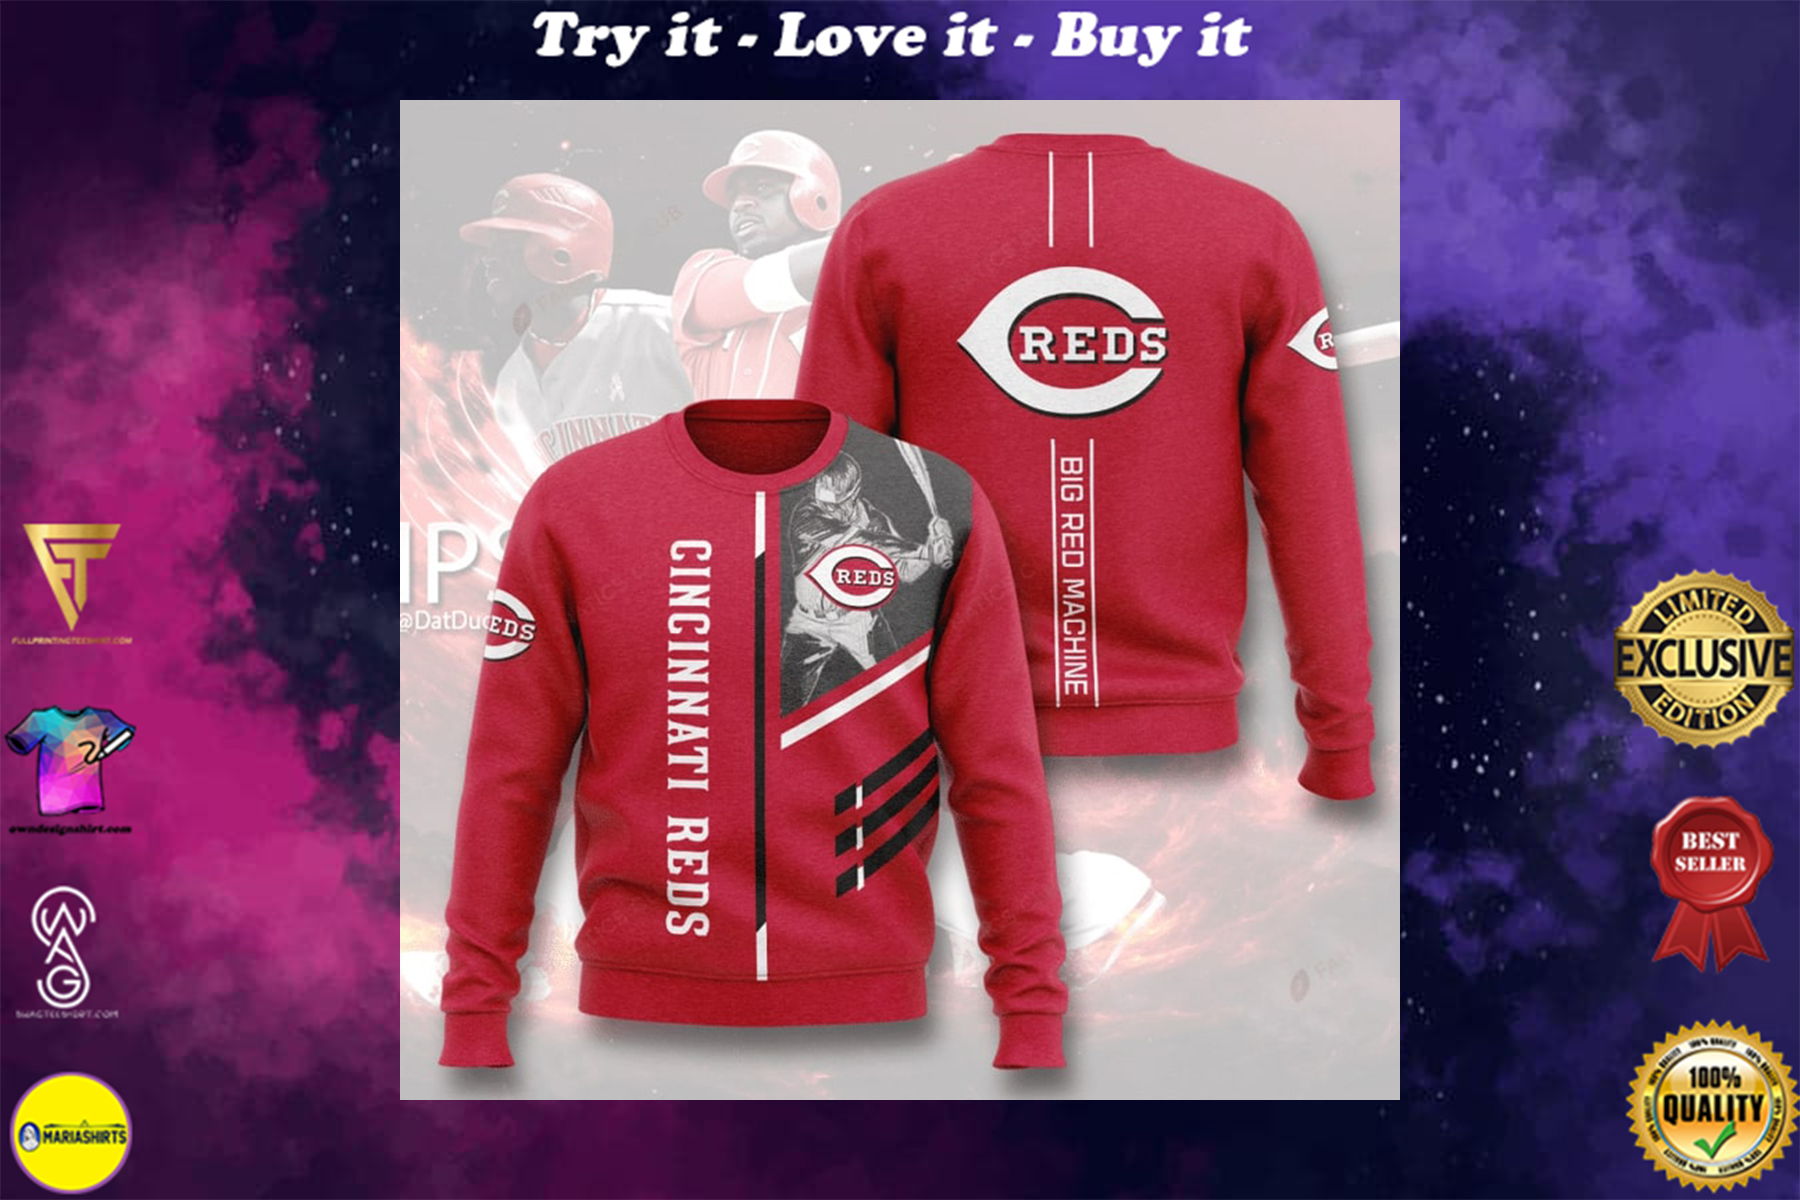 [special edition] cincinnati reds big red machine full printing ugly sweater - maria